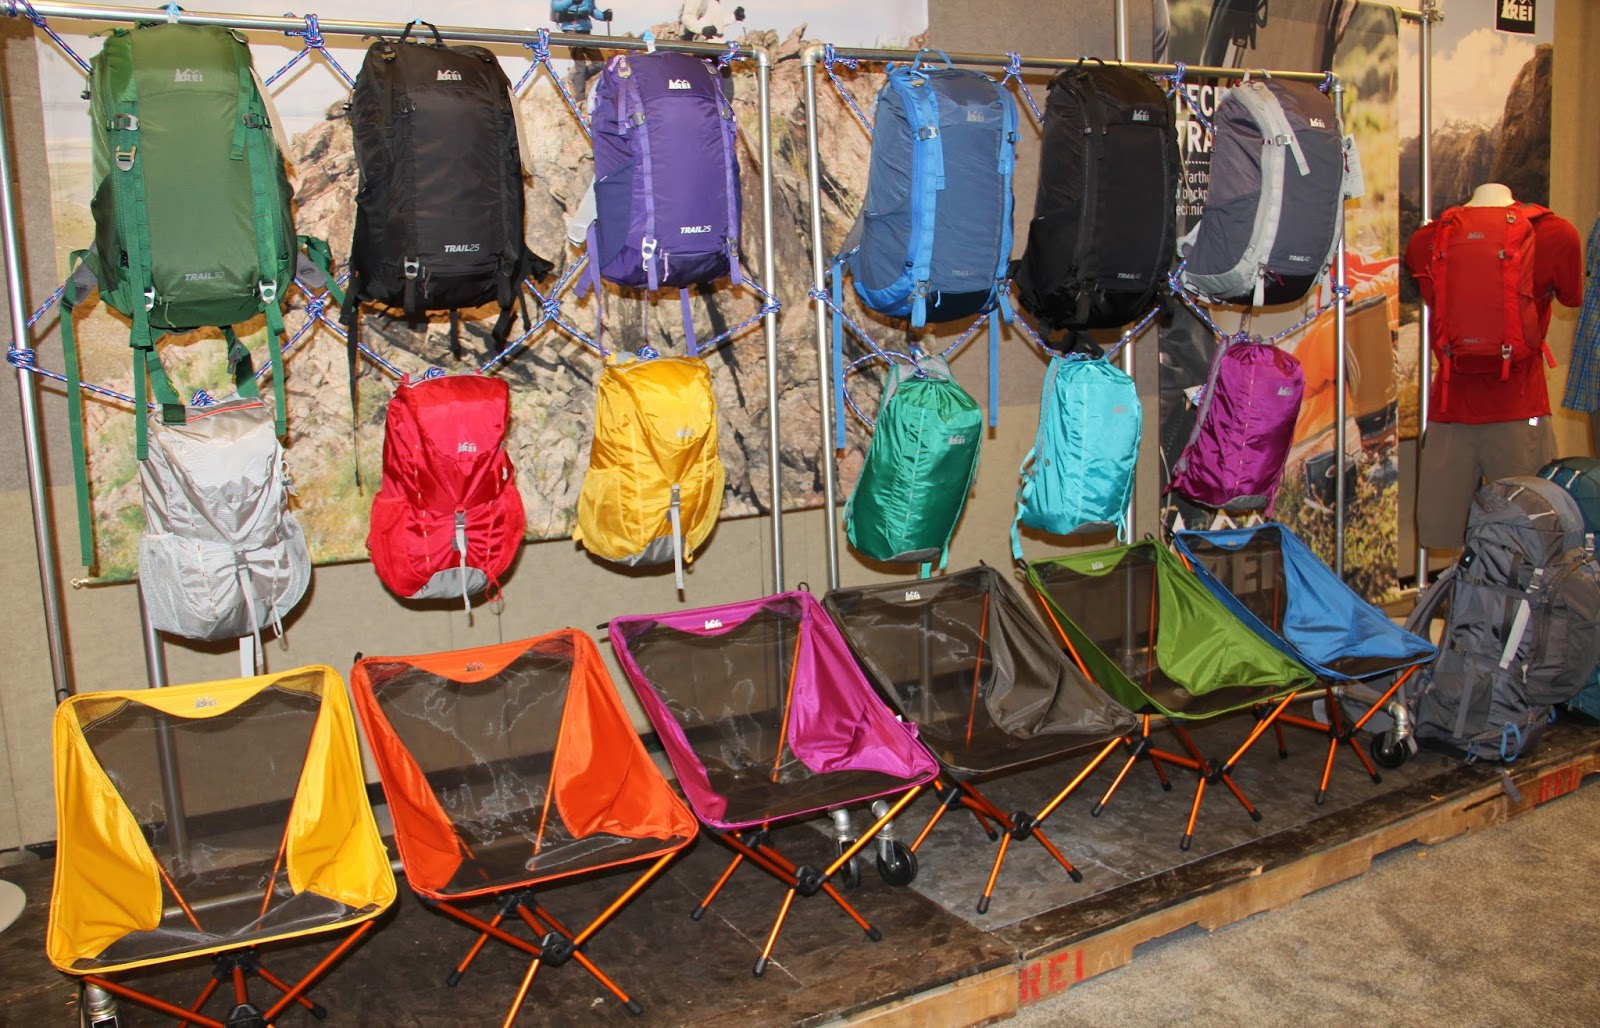 Color Print Trends Solid Saturated Outdoor Retailer S 2015 Espro Napoly Genuine Leather Portofolio Bag Black Rei Trail Daypacks Come In Gender Specific Different Sizes Multiple Pockets Mesh Shaped Cushioned Back Panels Ez Access Center Compartment Comes With A